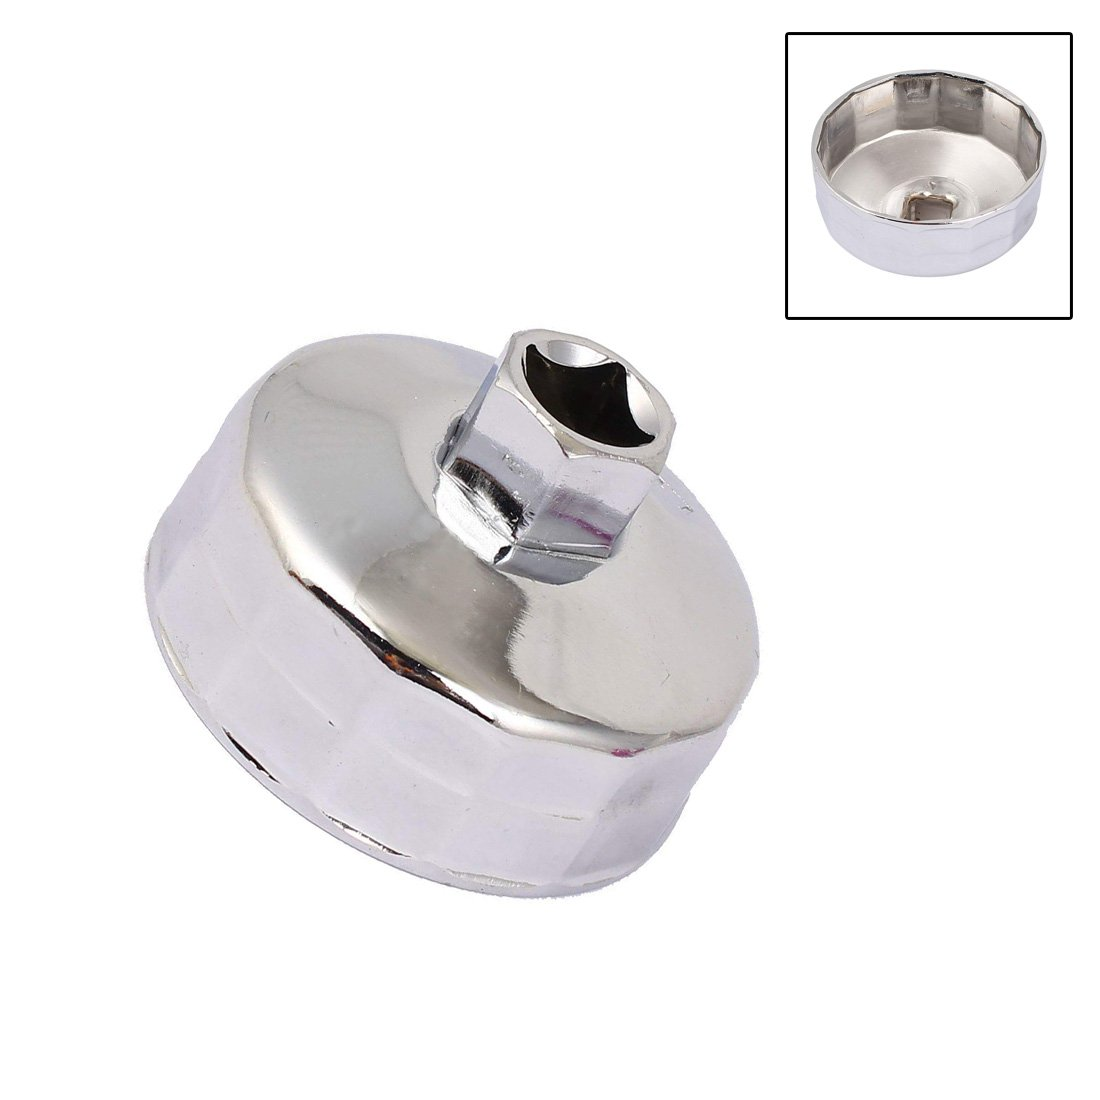 XMHF 64mm//2.5Inch Inner Diameter Oil Filter Wrench Tool for Car Users